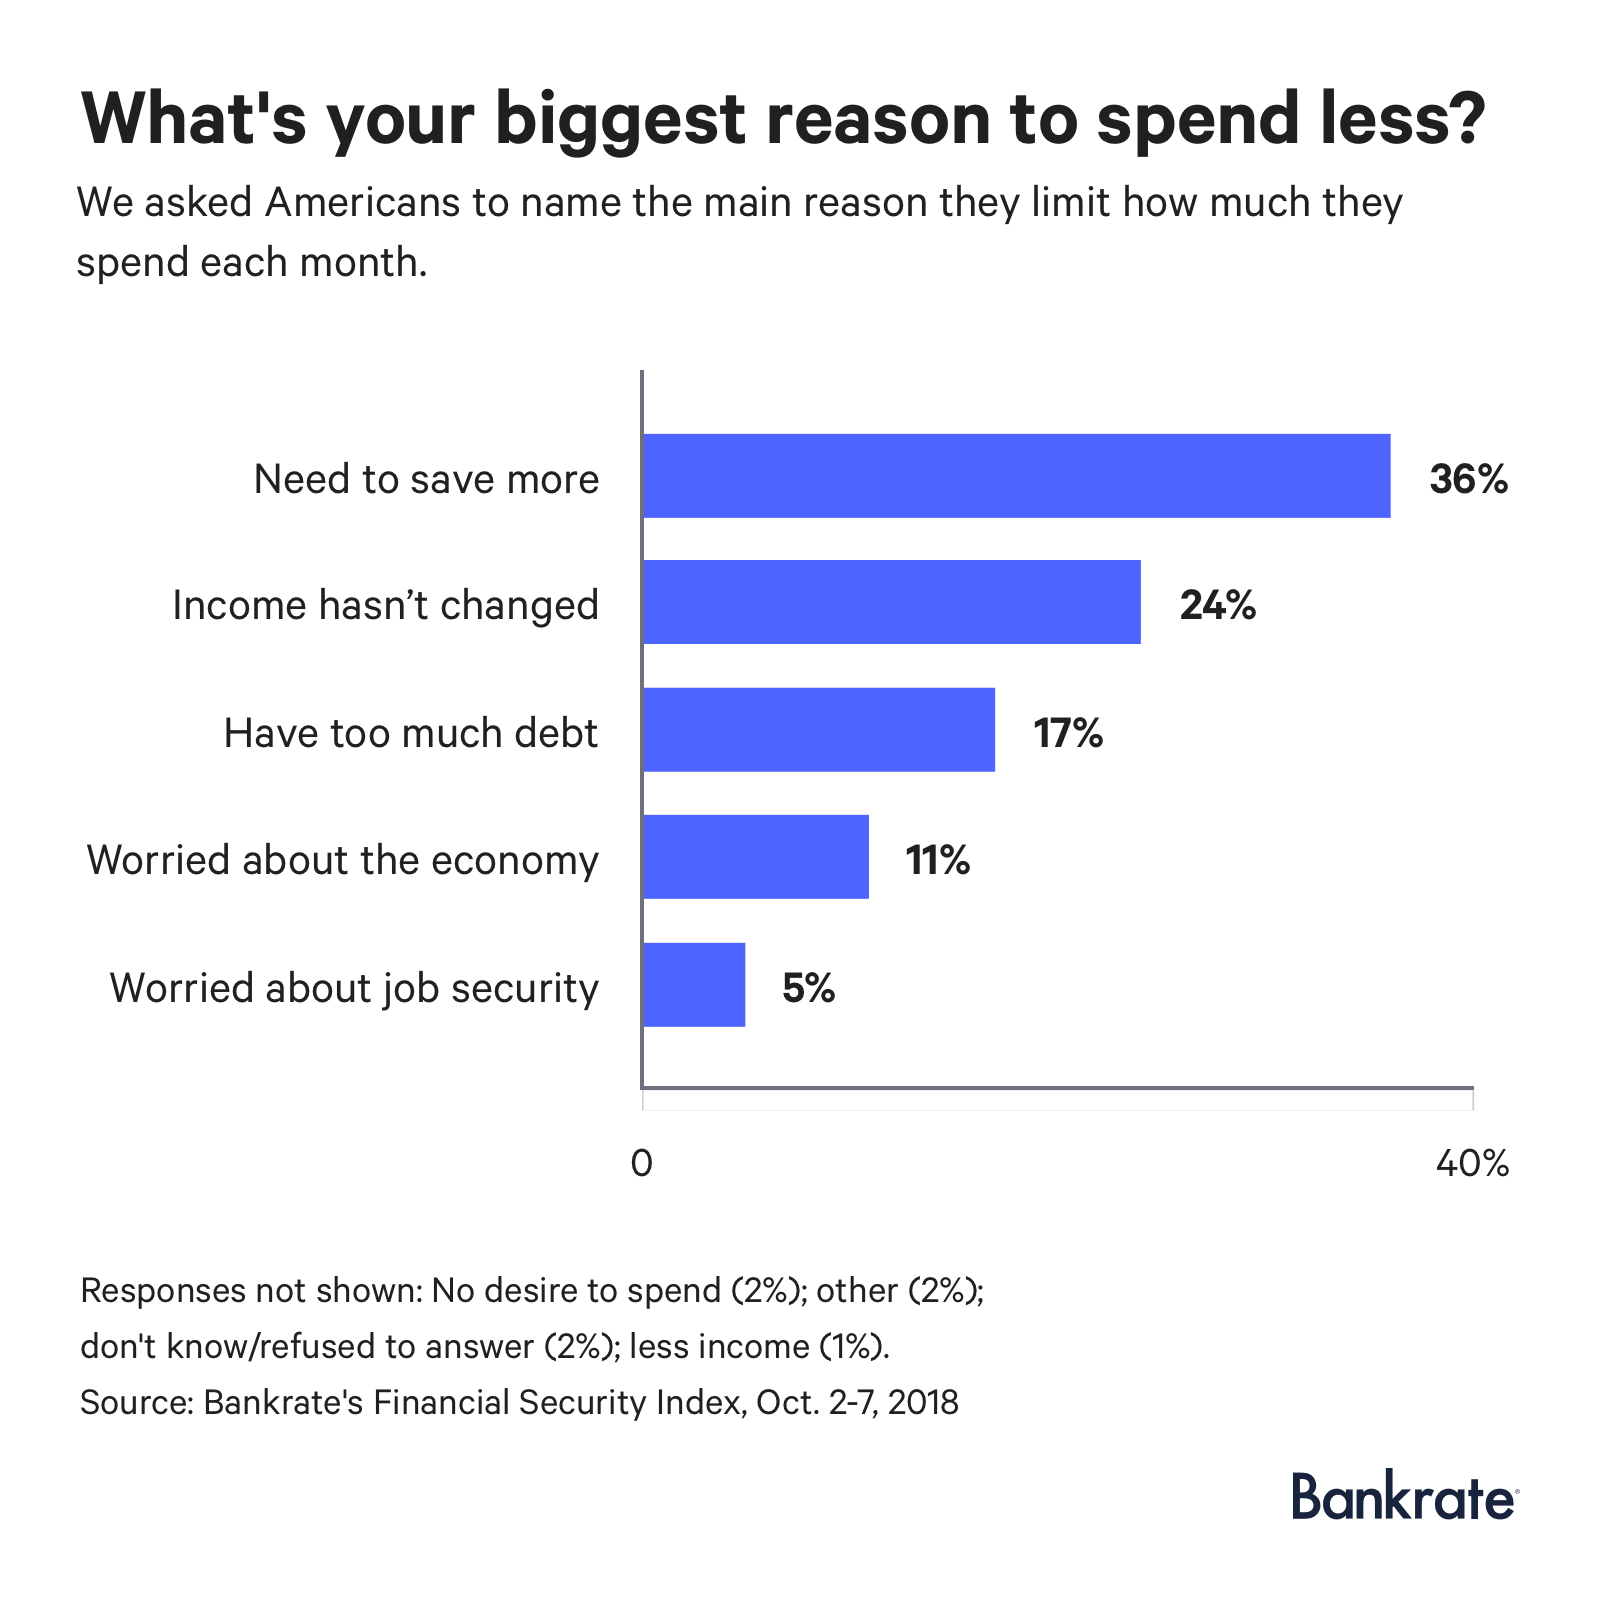 Graph: 36% of Americans are spending less because they need to save more